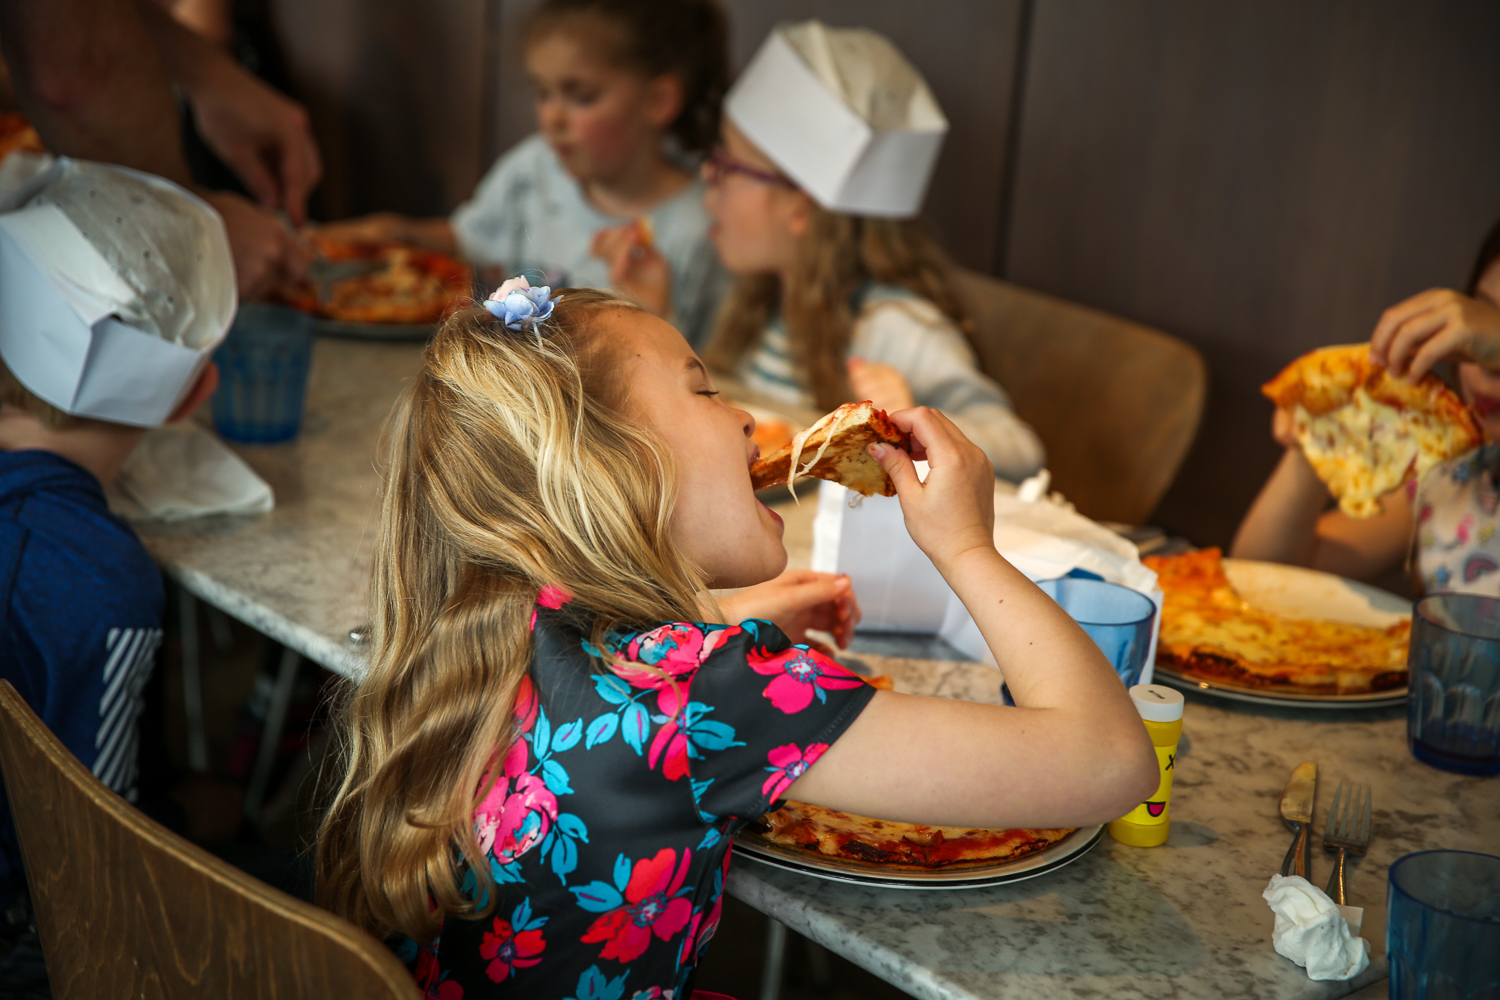 Pizza-Express-Kids-indoor-Birthday-Party-family-photographer-South-Wales-Natalia-Smith-Photography-0015.jpg